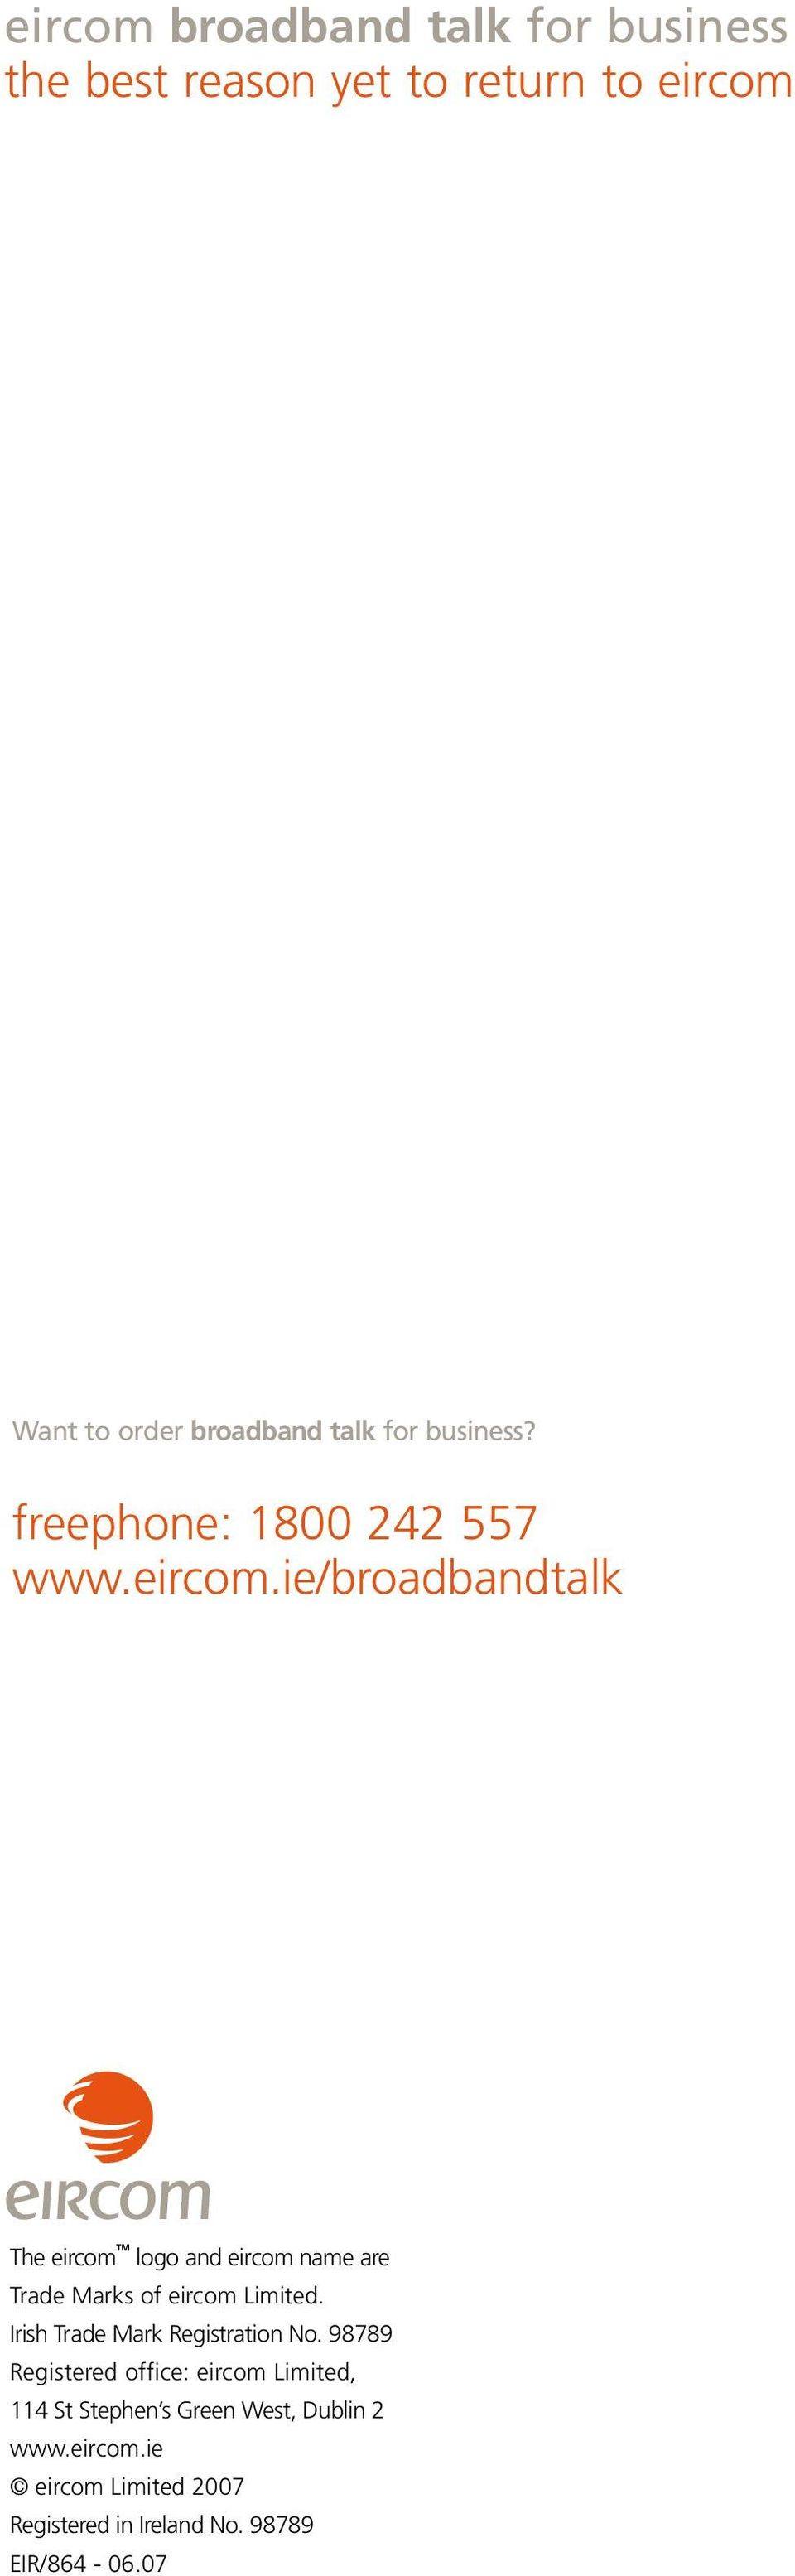 ie/broadbandtalk The eircom TM logo and eircom name are Trade Marks of eircom Limited.